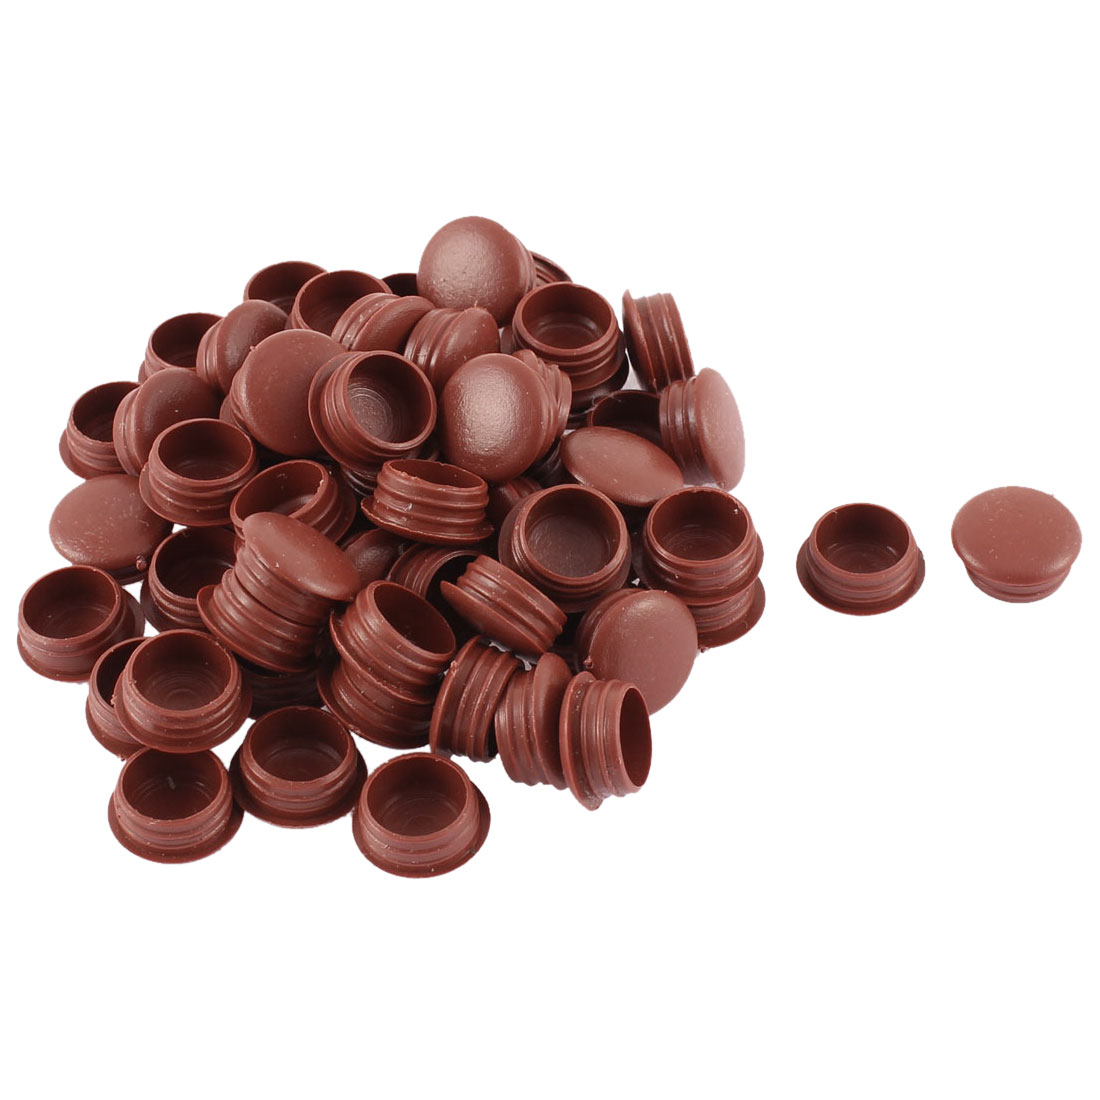 Home Plastic Furniture Chair Legs Decor Hole Covers Tube Insert Burgundy 60pcs